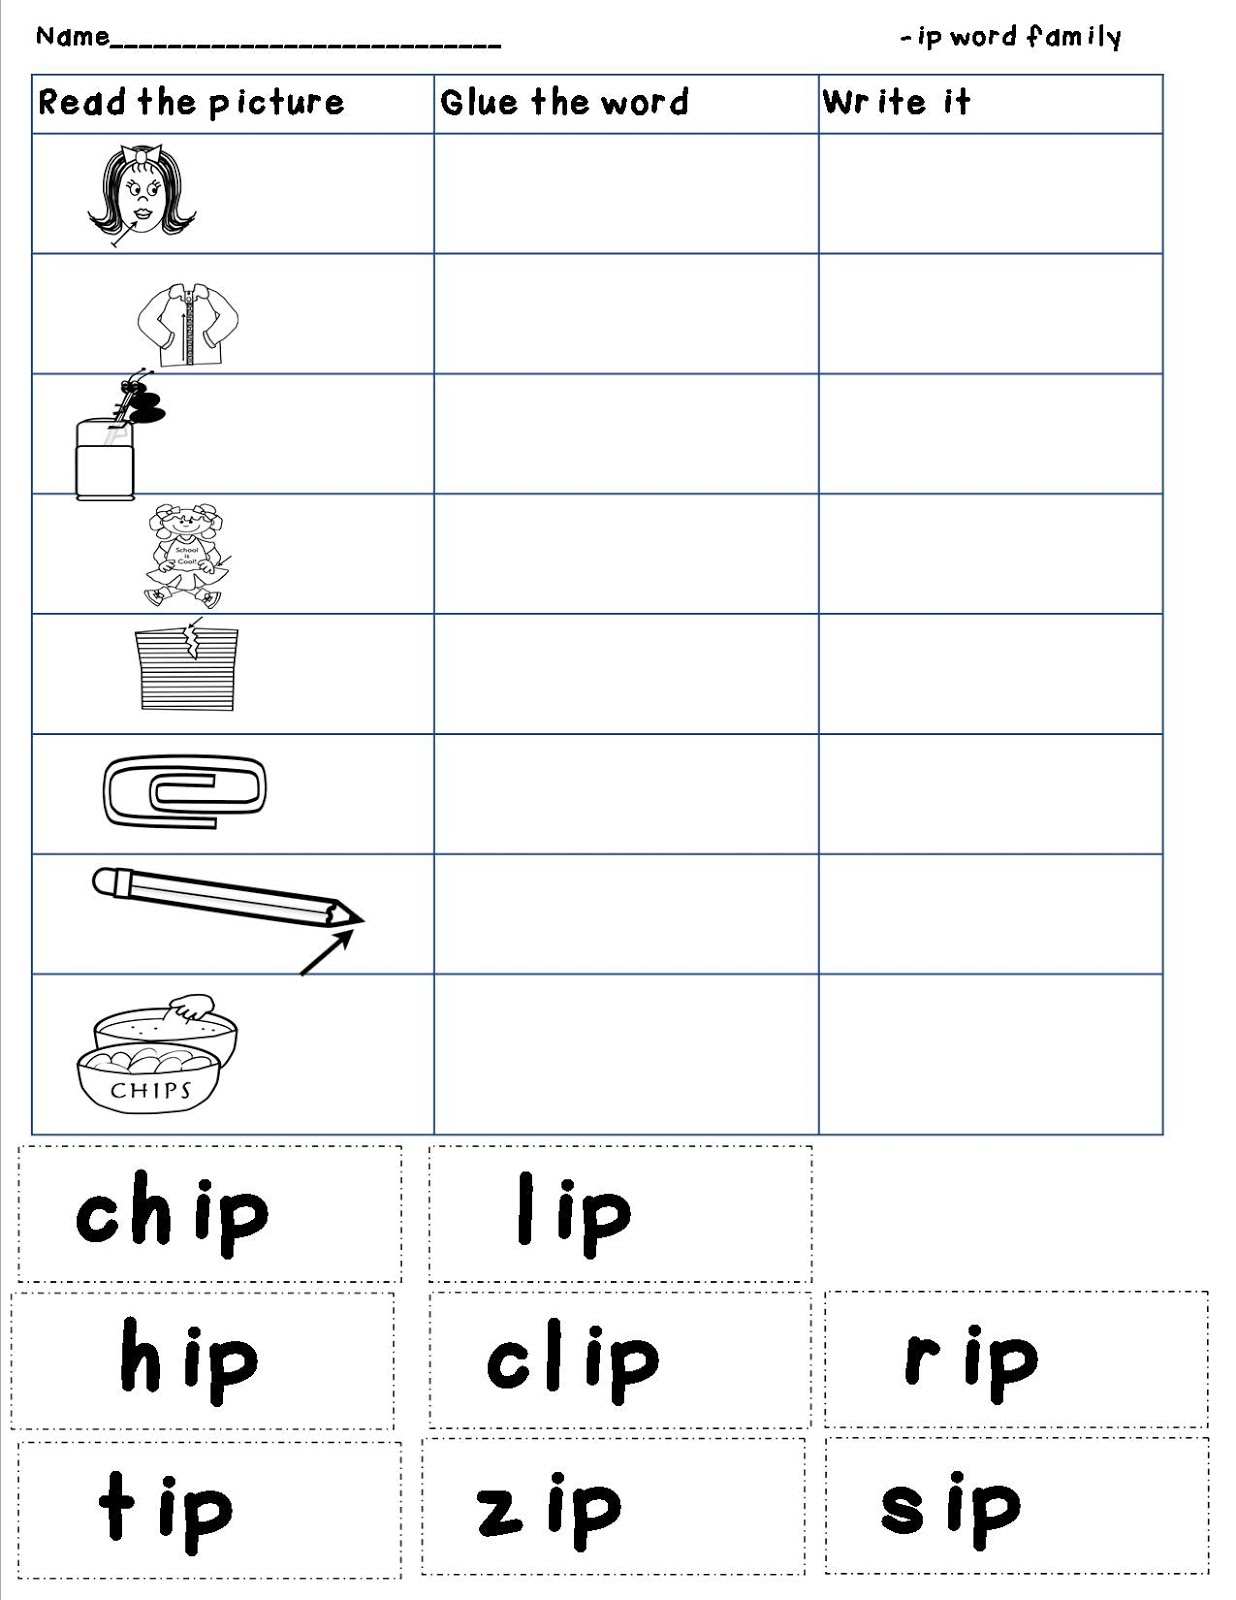 Ip Word Family Worksheets Free Worksheets Library